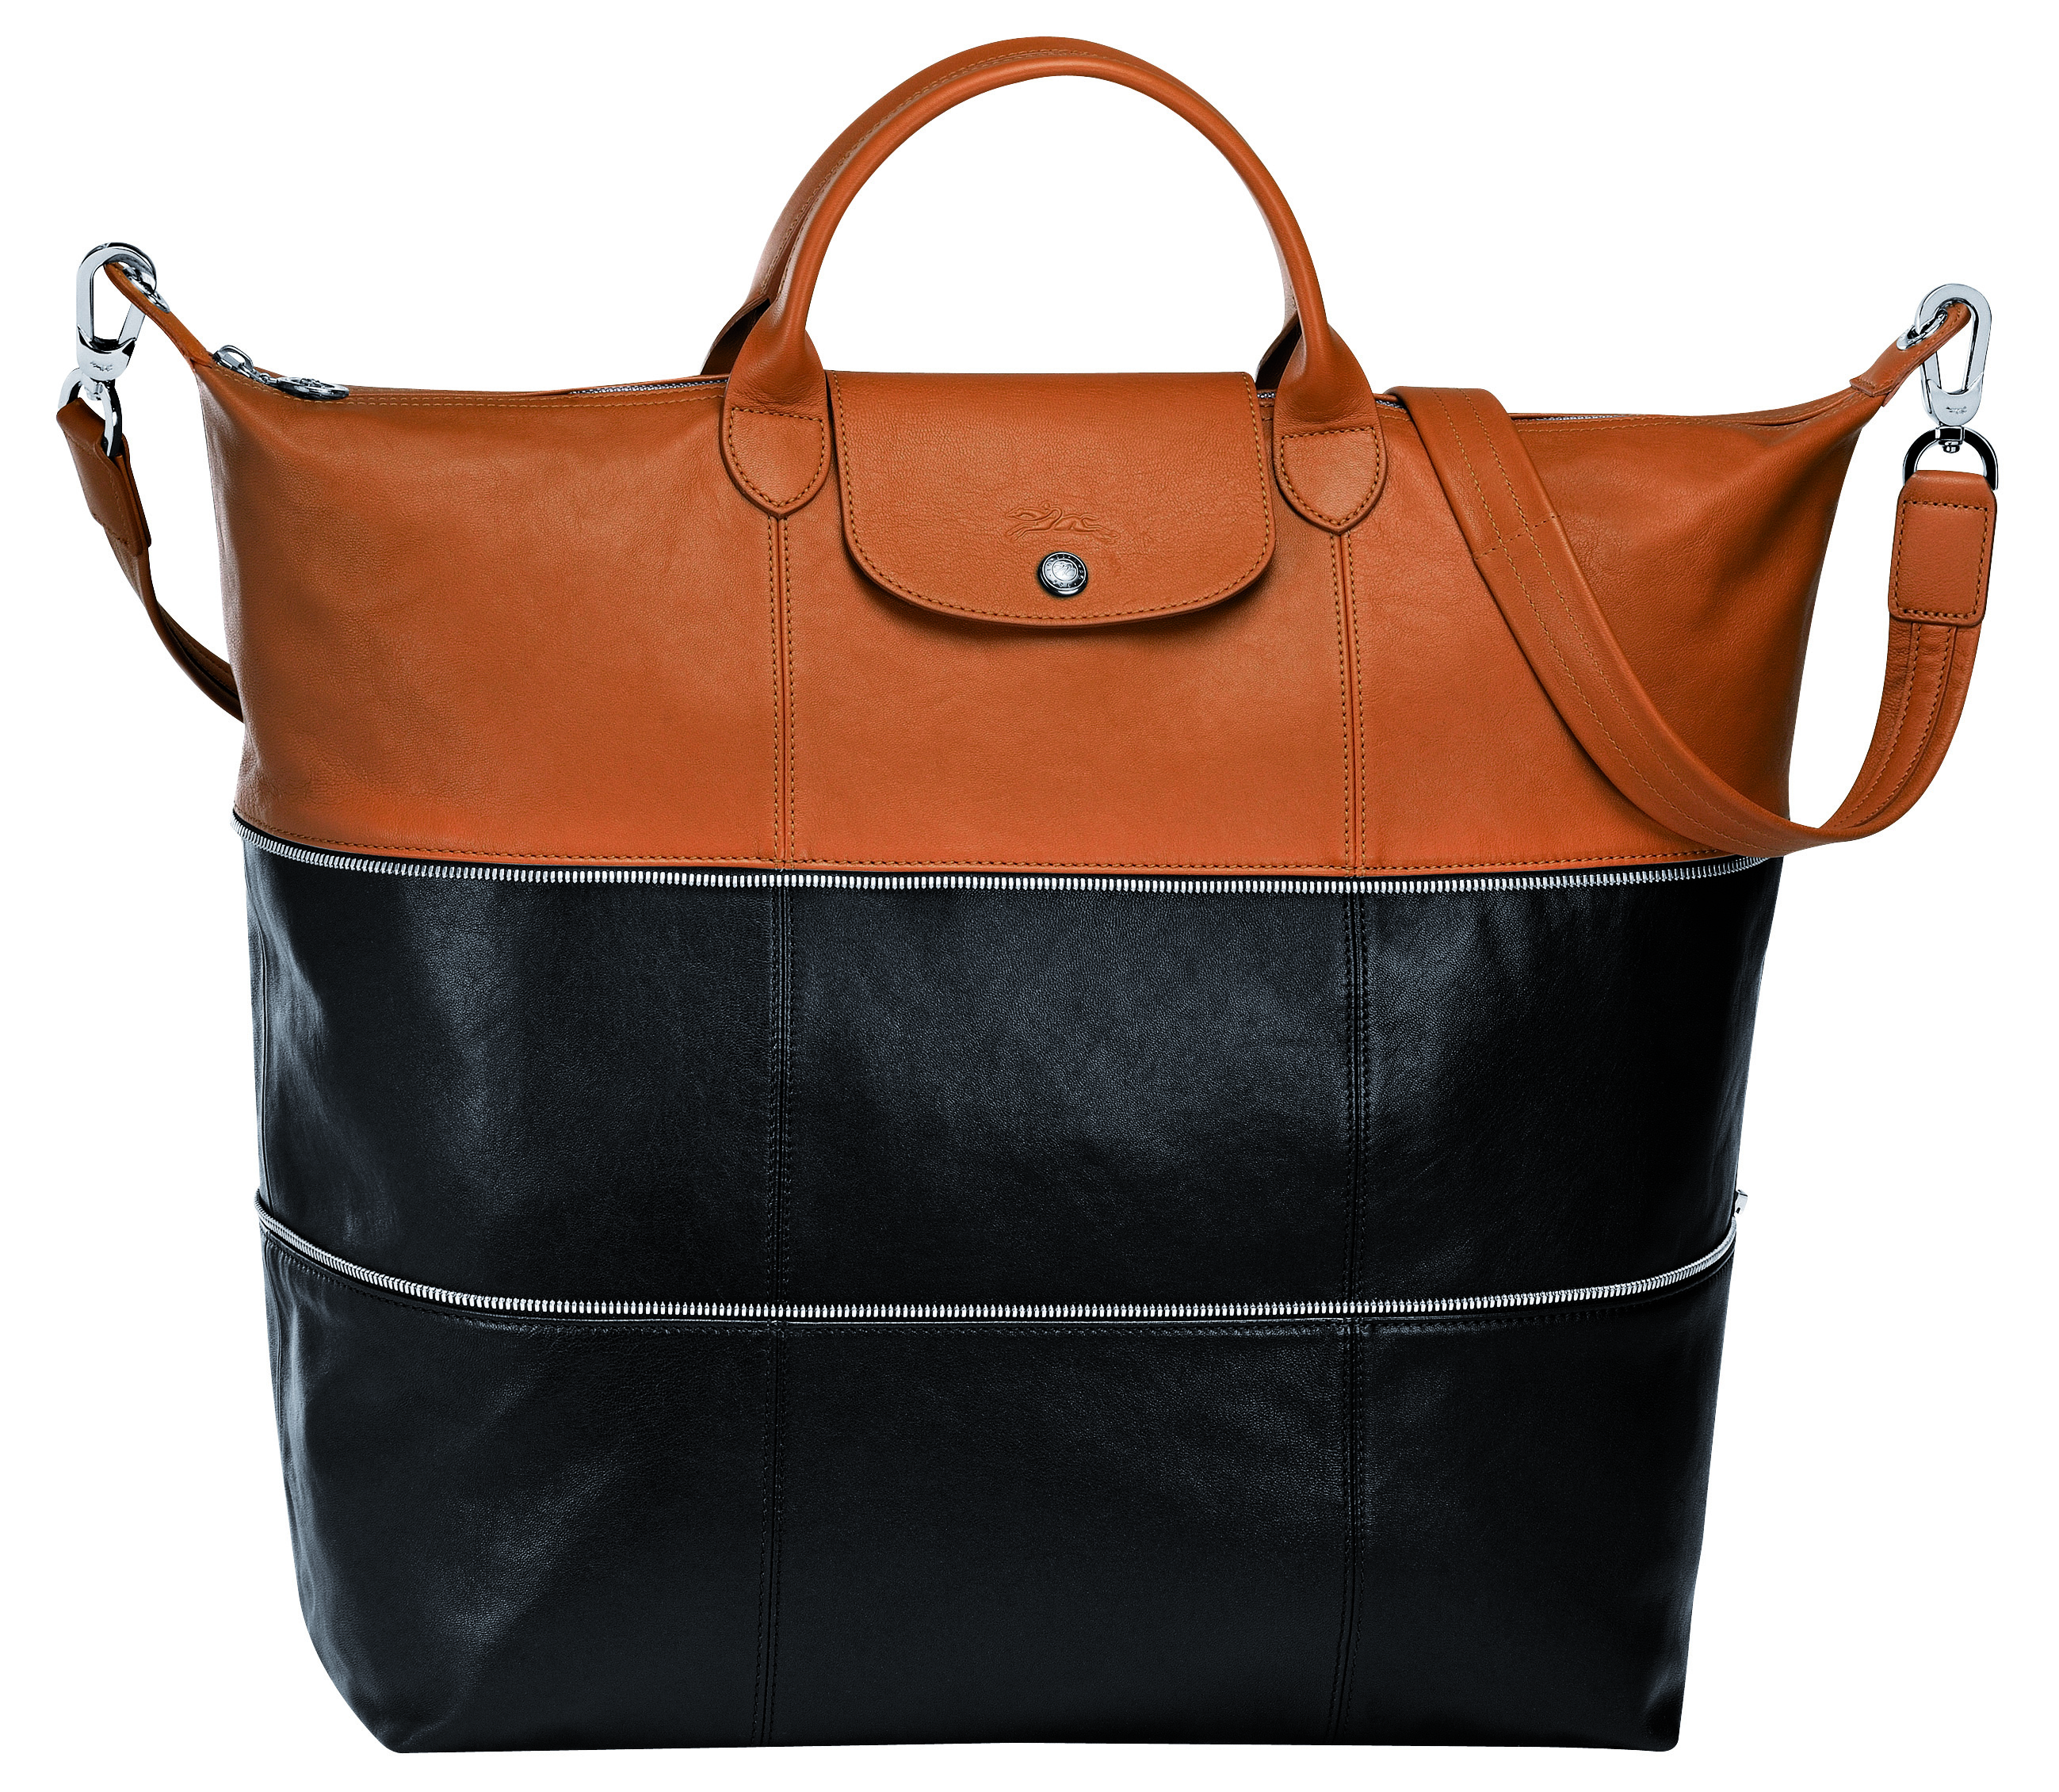 WEEKEND WANDERER. The Ruban expandable leather travel bag